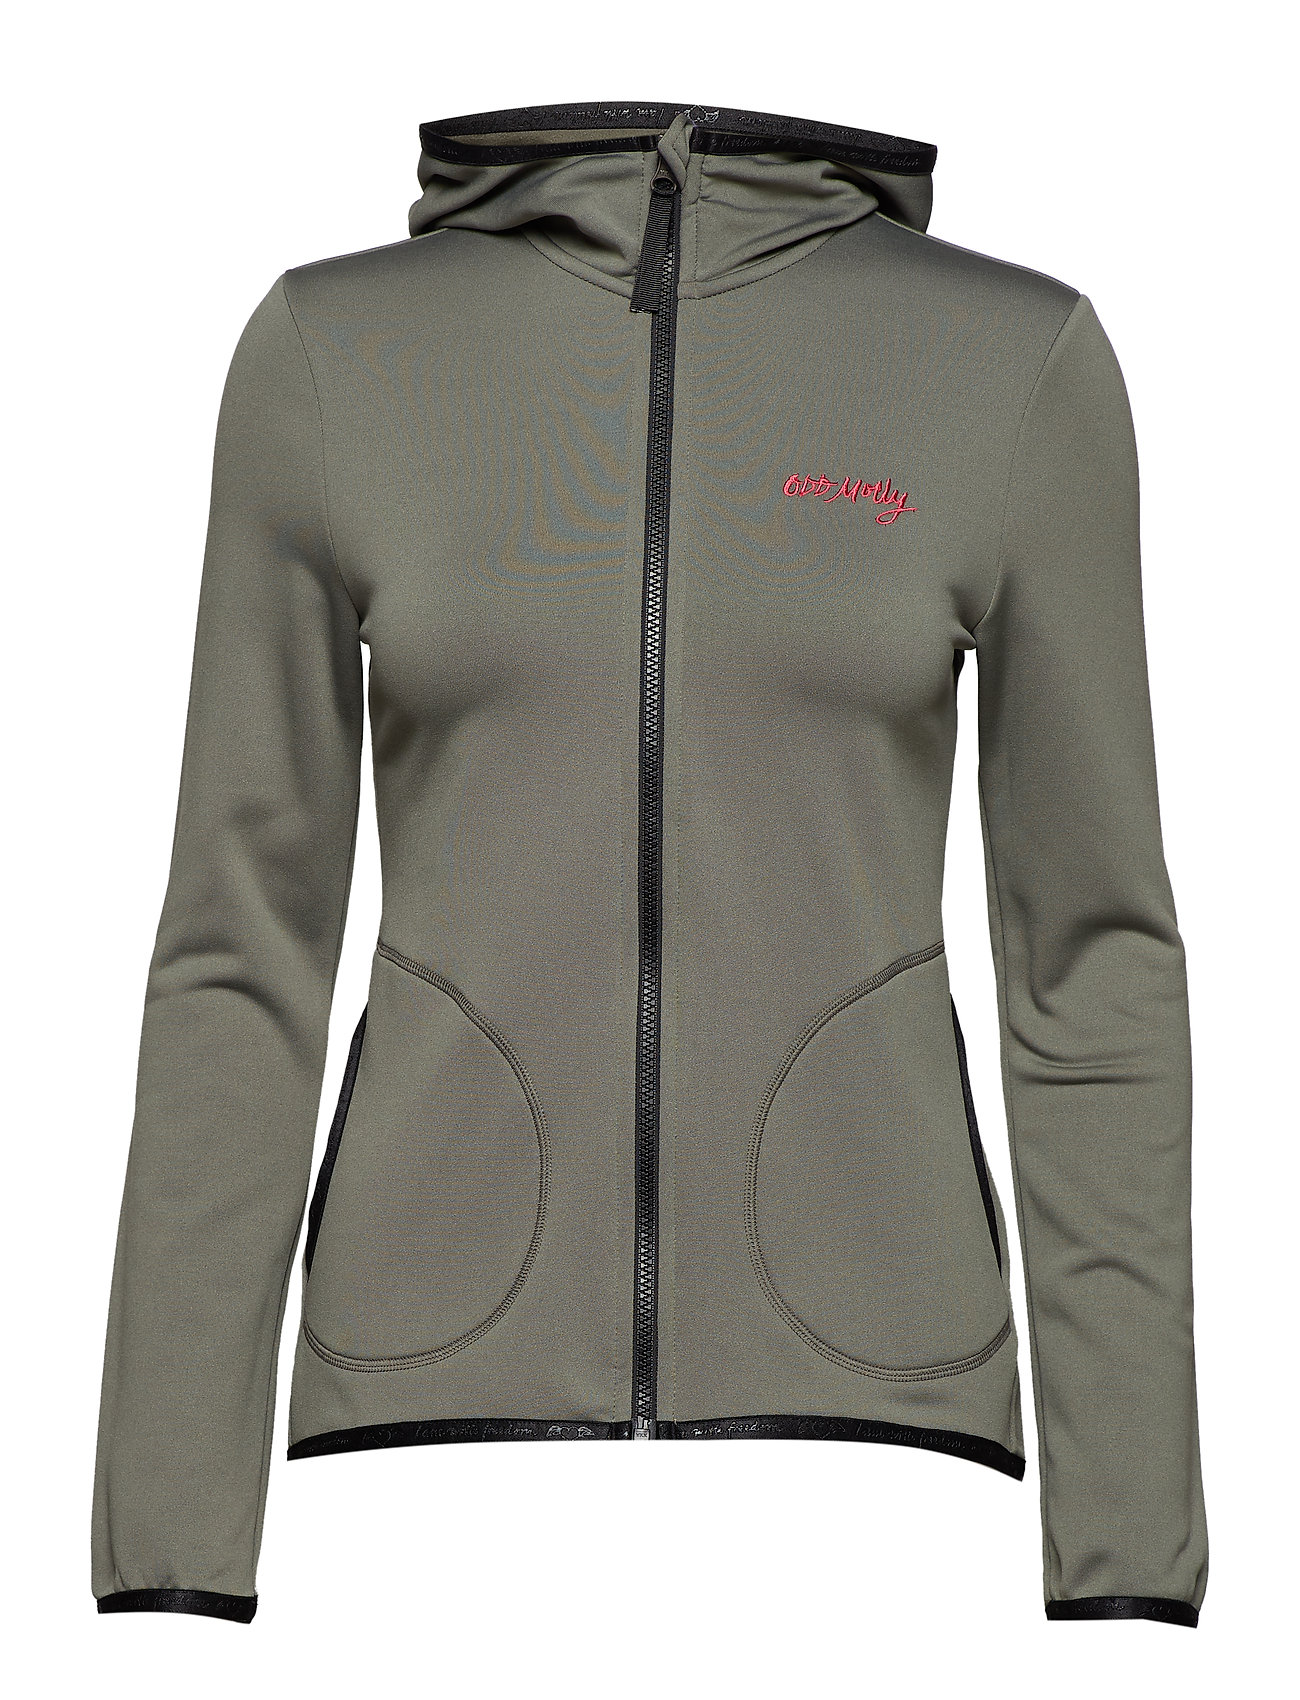 ODD MOLLY ACTIVE WEAR storm mid layer solid jacket